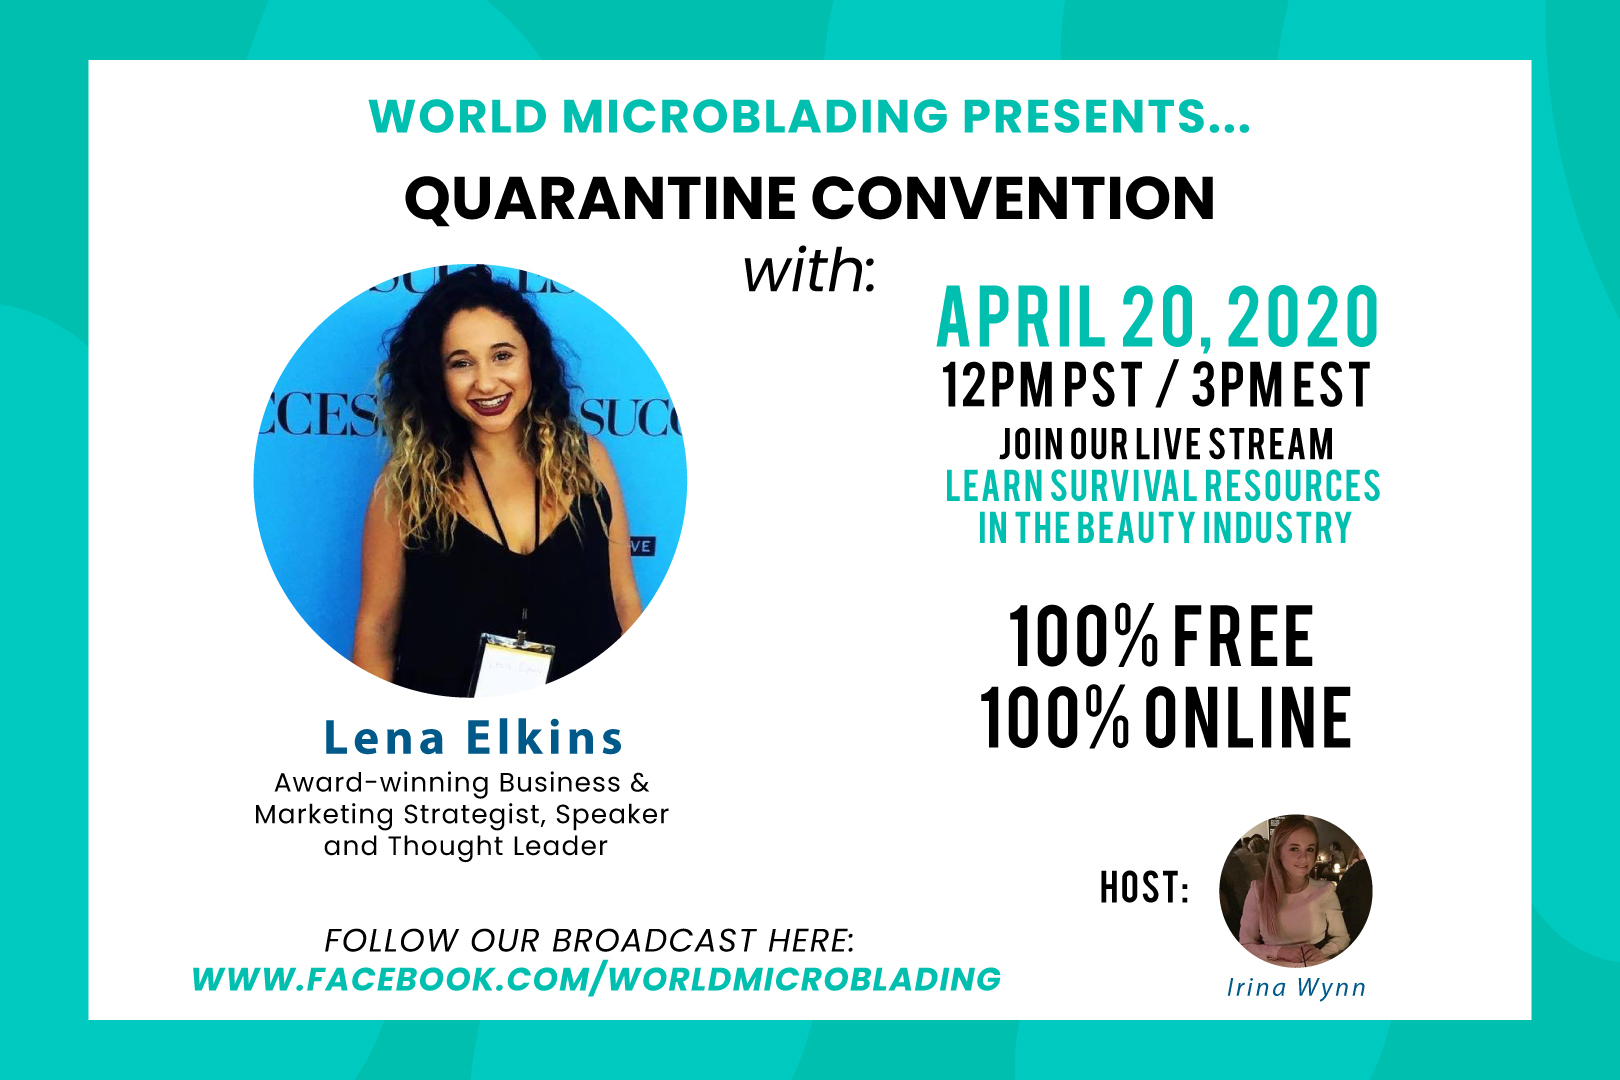 Lena Elkins: LIVE at the Quarantine Convention for the Beauty Industry